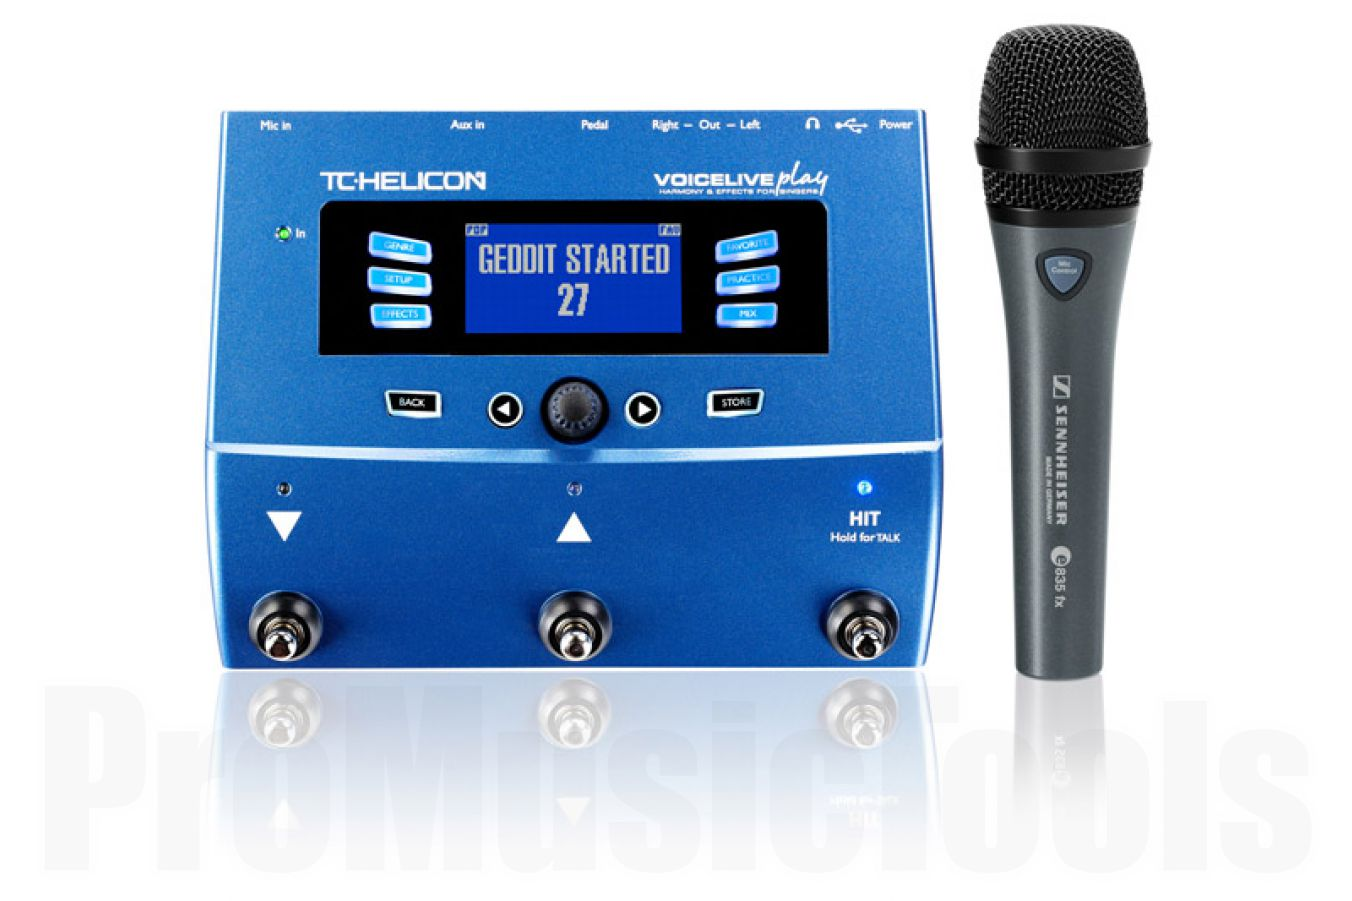 TC Helicon VoiceLive Play & Sennheiser E835FX Bundle - b-stock (1x opened box)